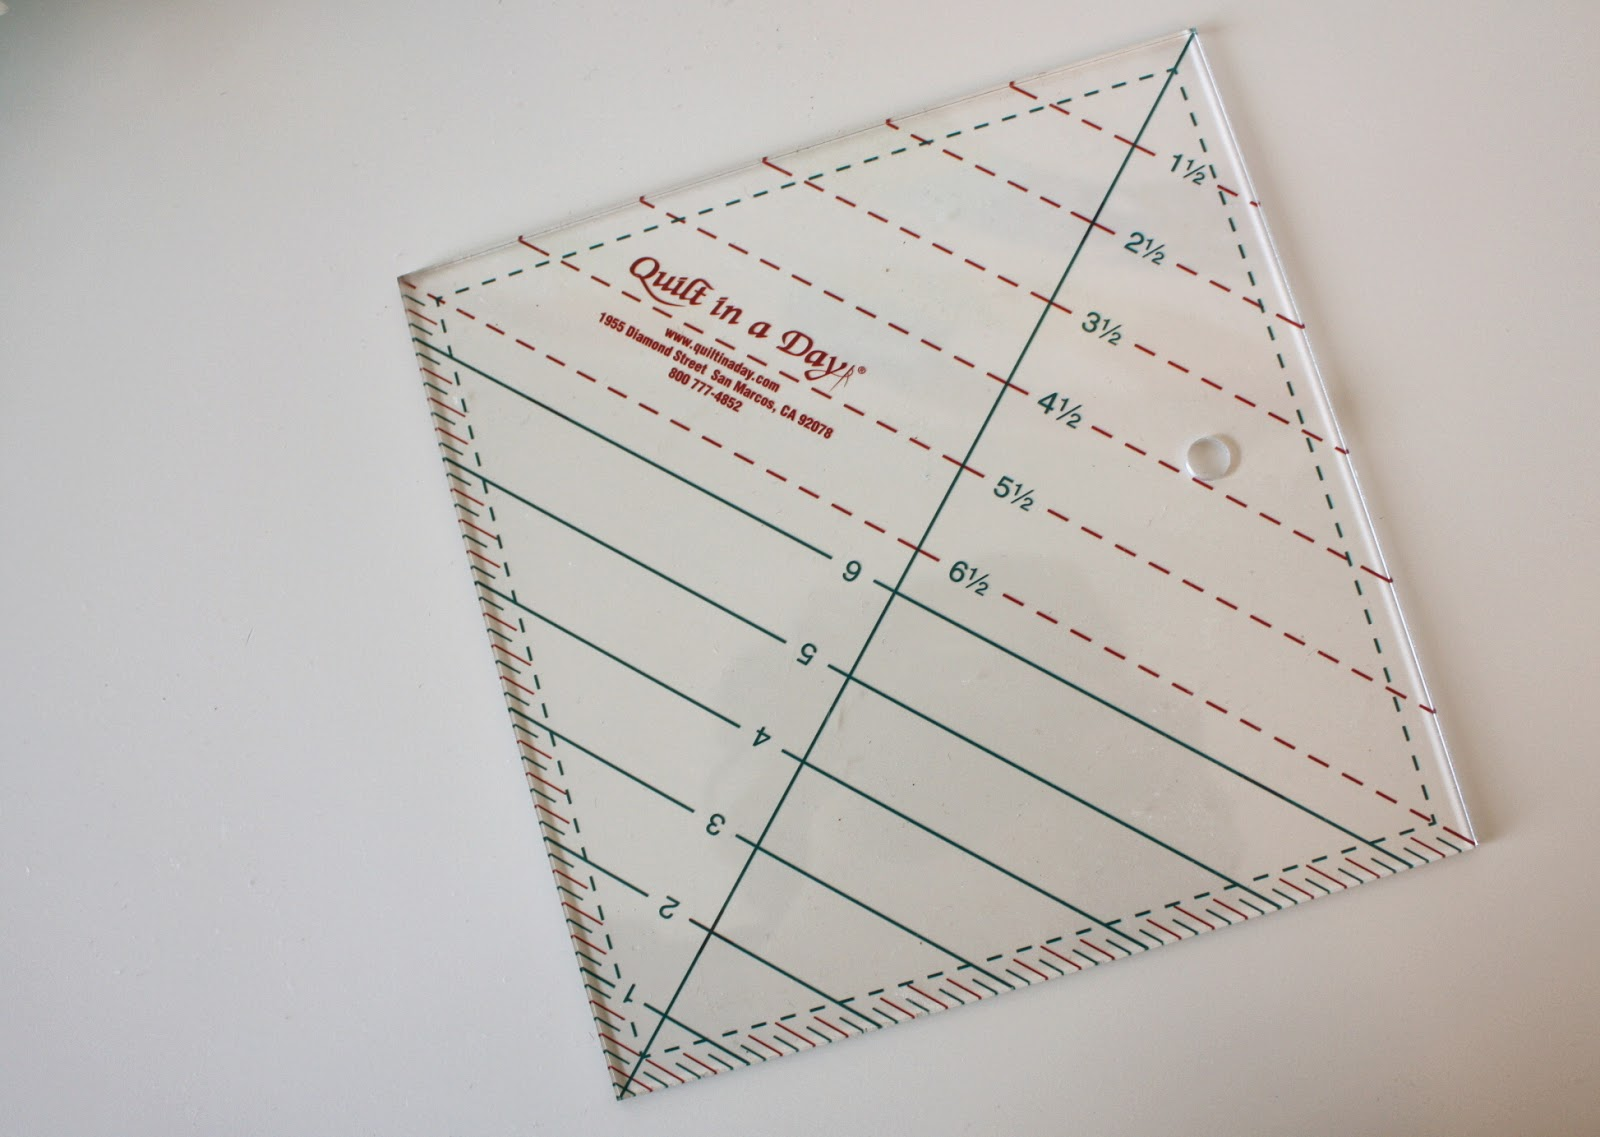 Half Square Triangle Short Cuts : quilt in a day ruler - Adamdwight.com